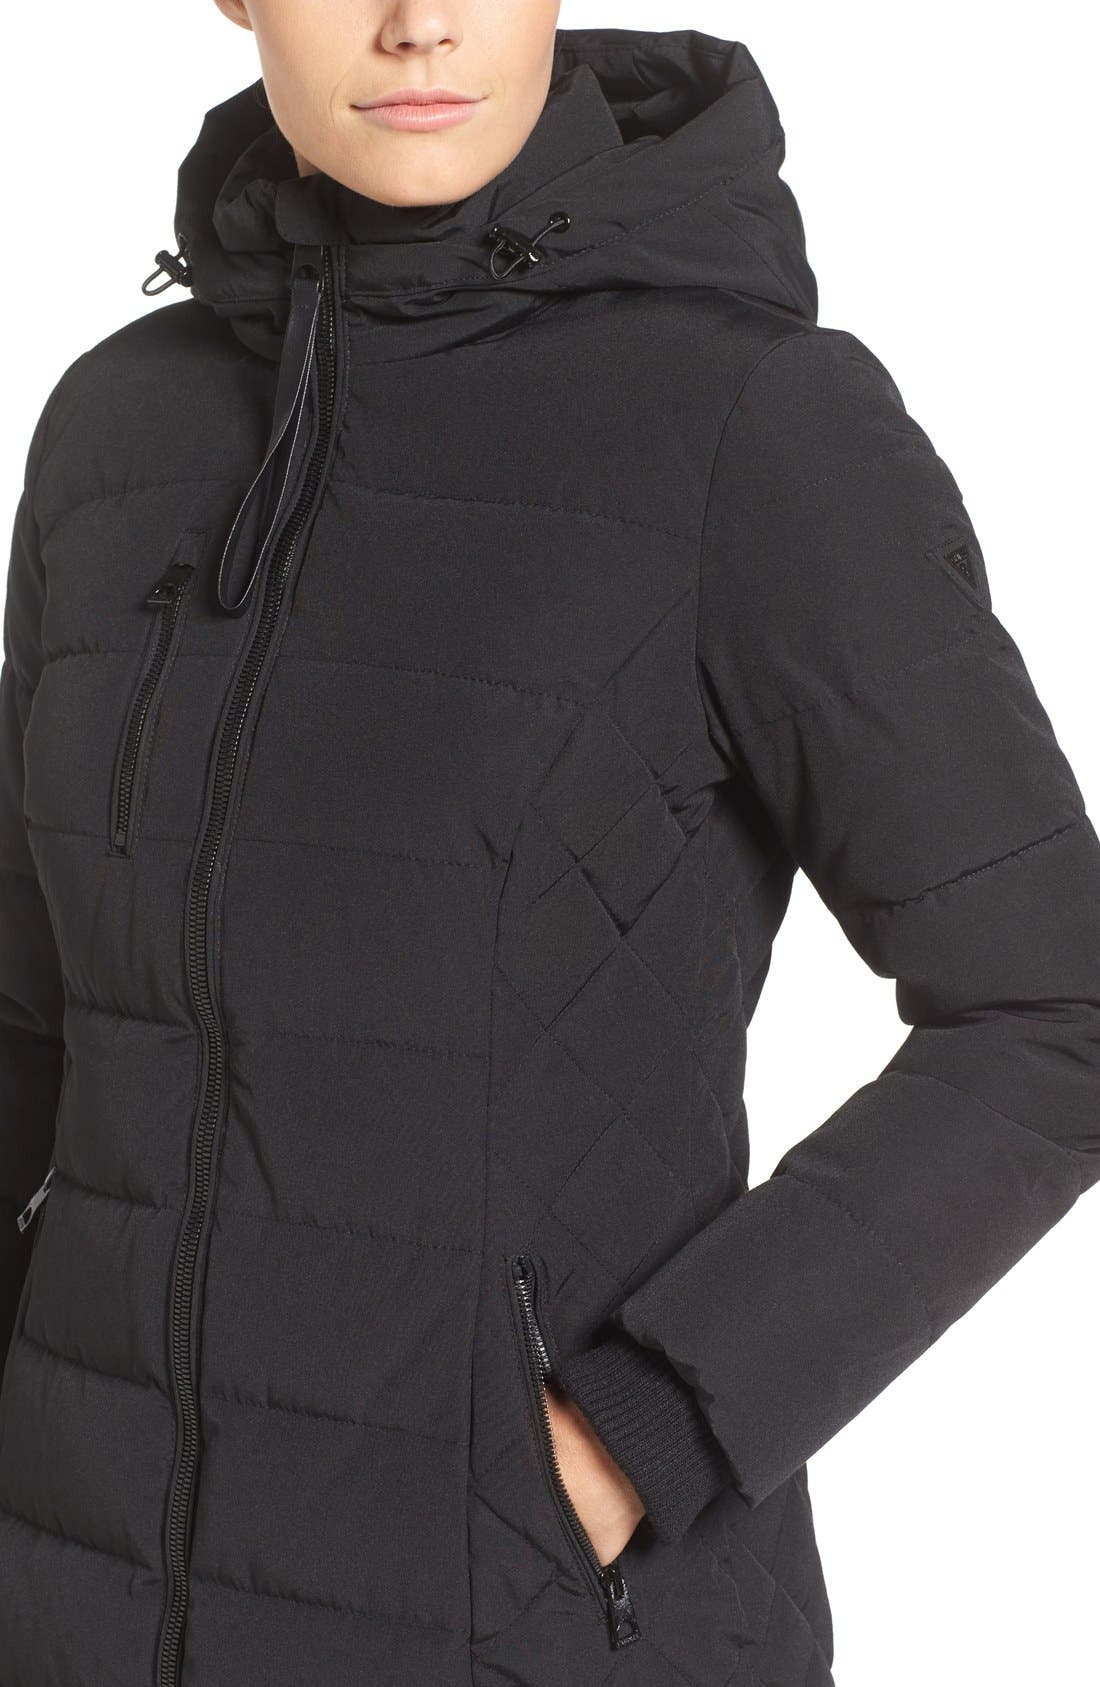 Quilted Hooded Puffer Coat,                             Alternate thumbnail 4, color,                             Black